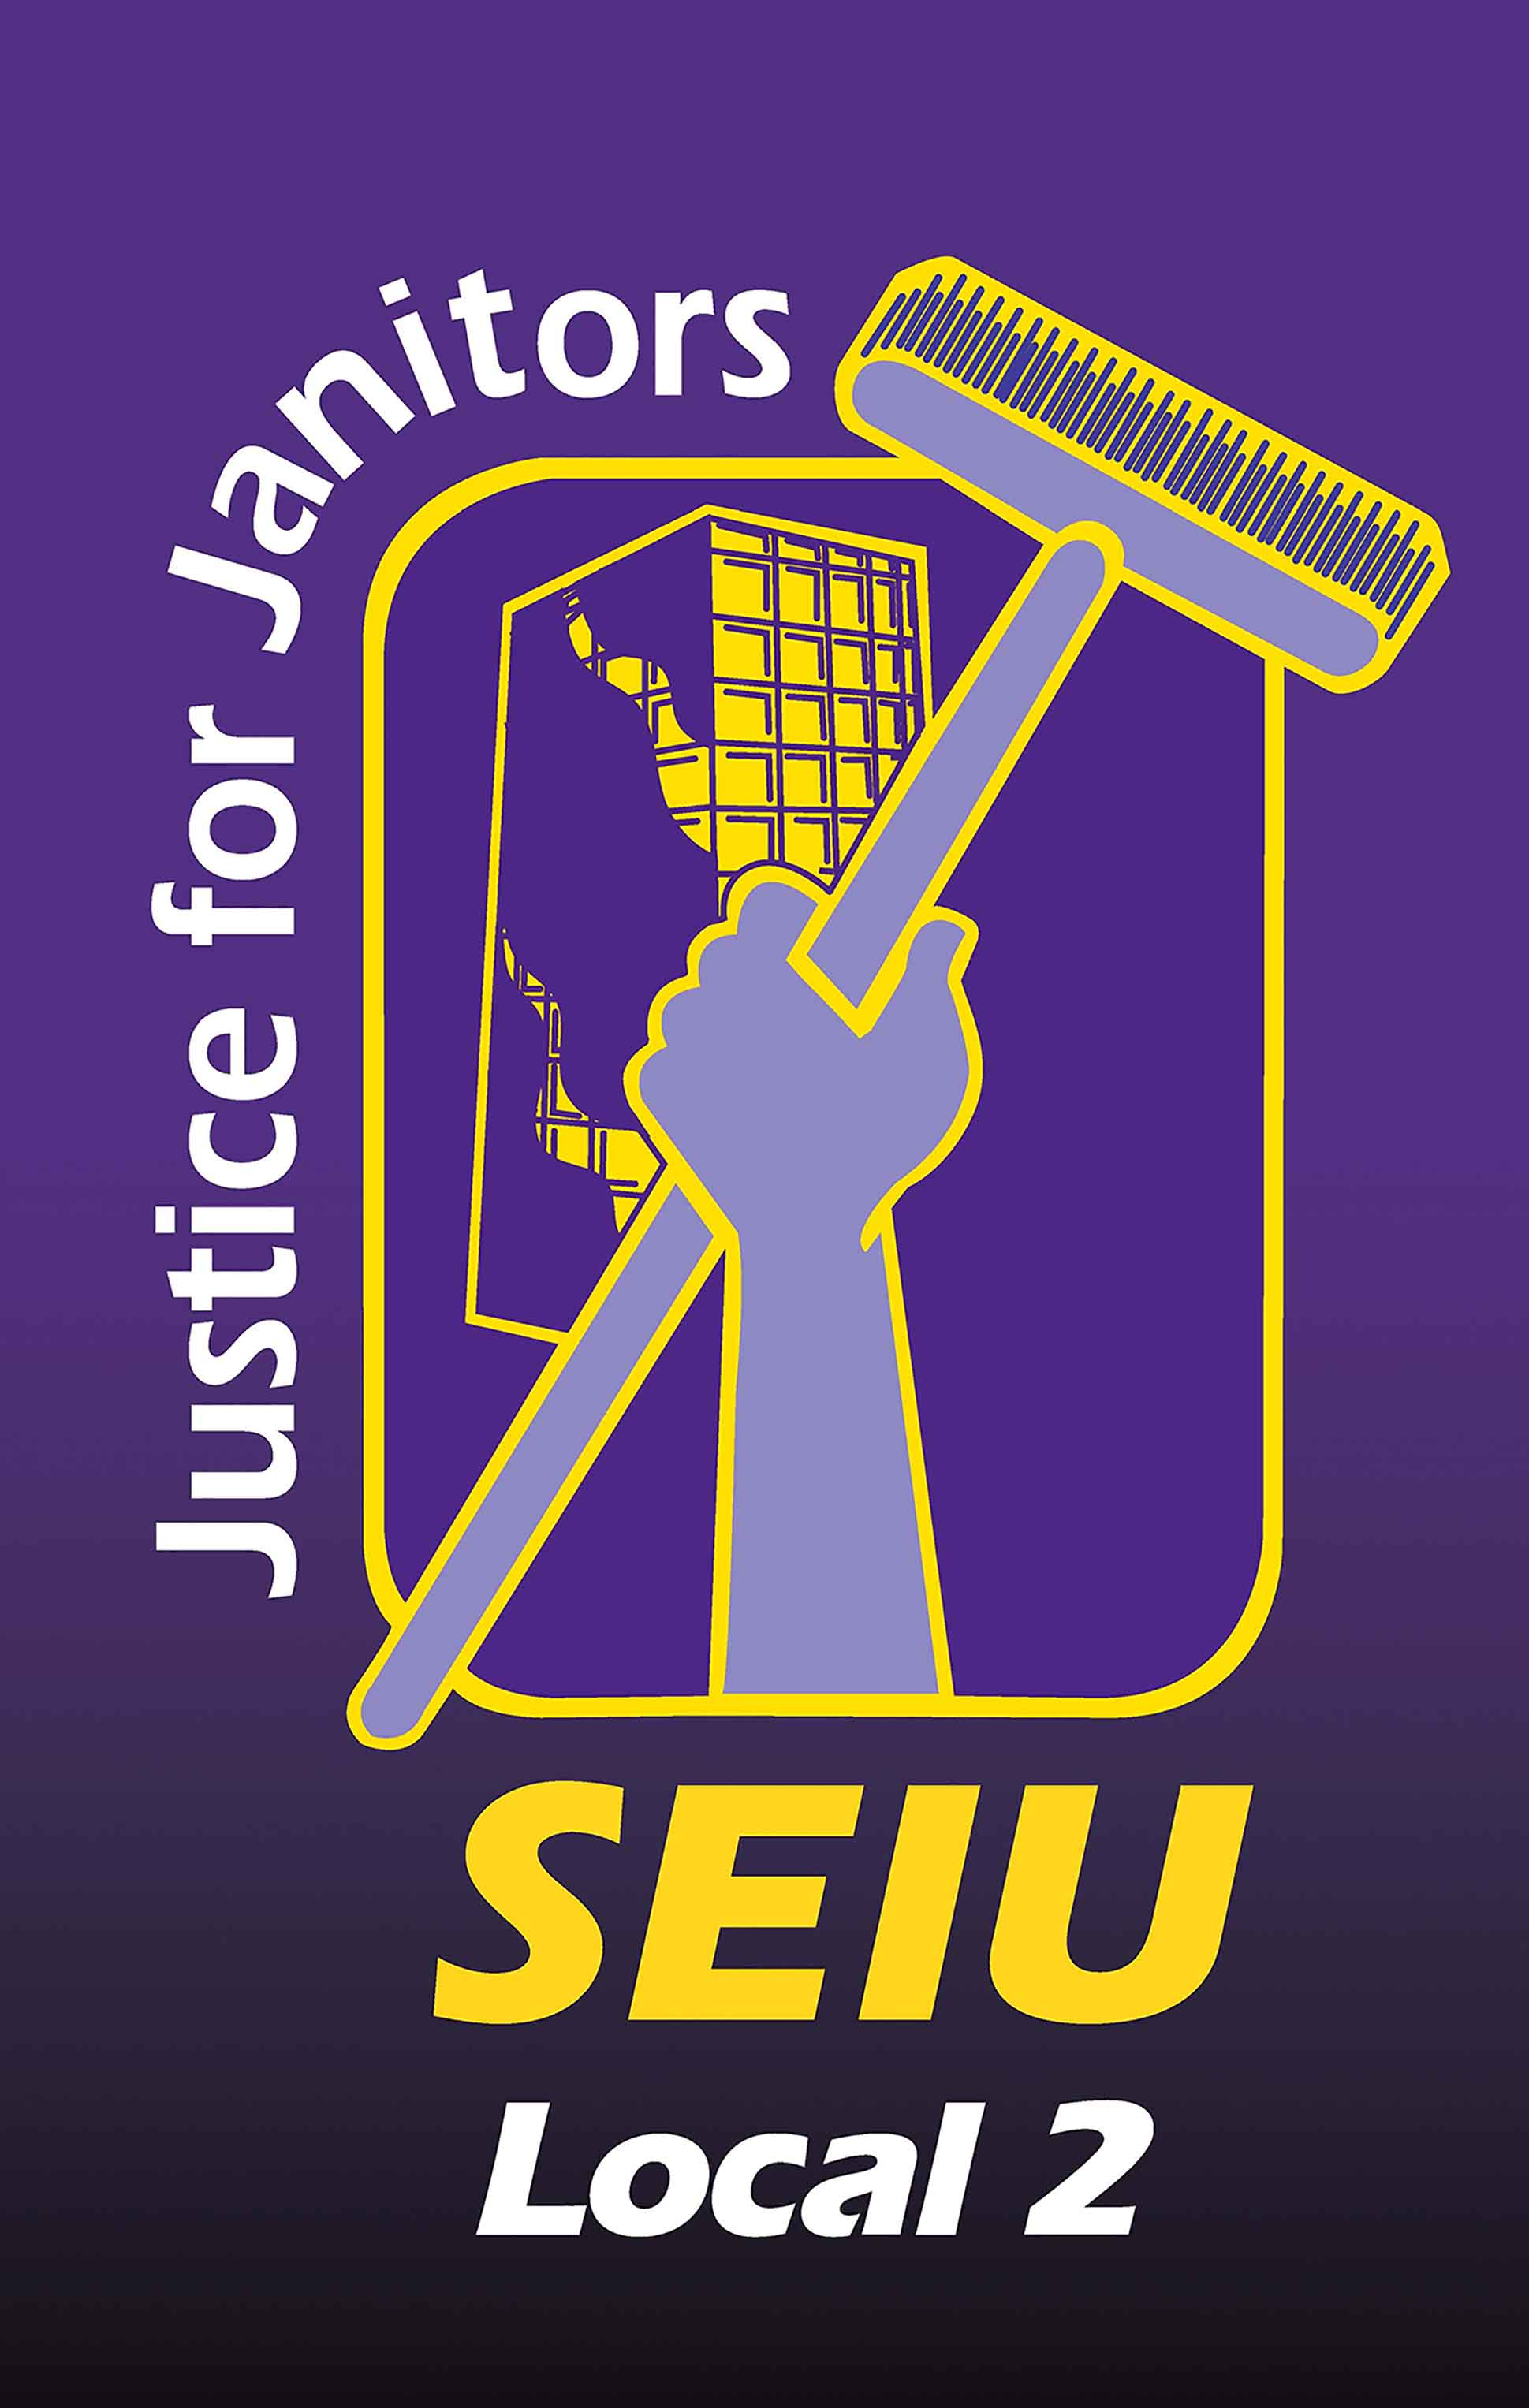 Empty words are not enough – Elected leaders publicly recognize need for Justice for Janitors